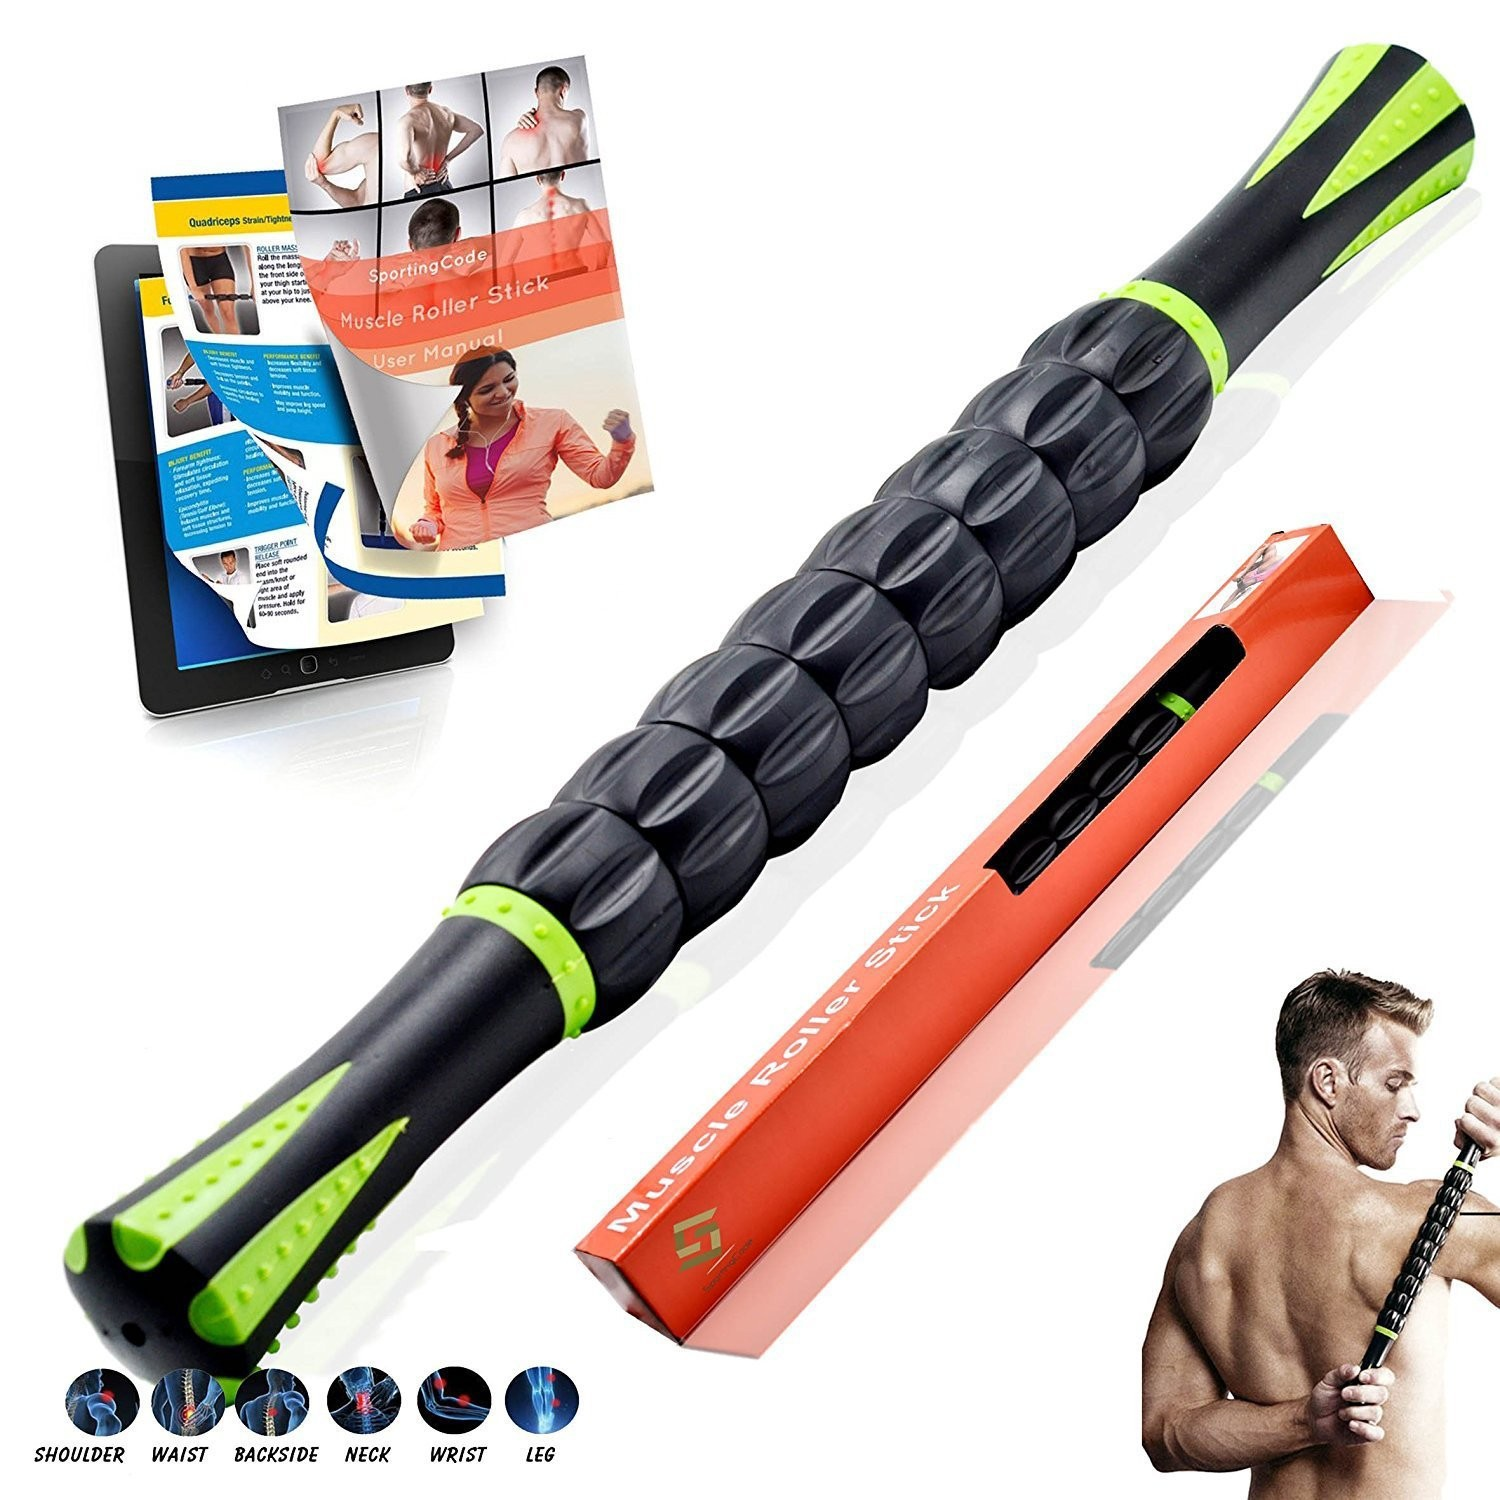 Gear muscle massage stick, deep muscles relax fascia, 3D Muscle Roller Stick dynamik muscle dynamik muscle eviscerate 90